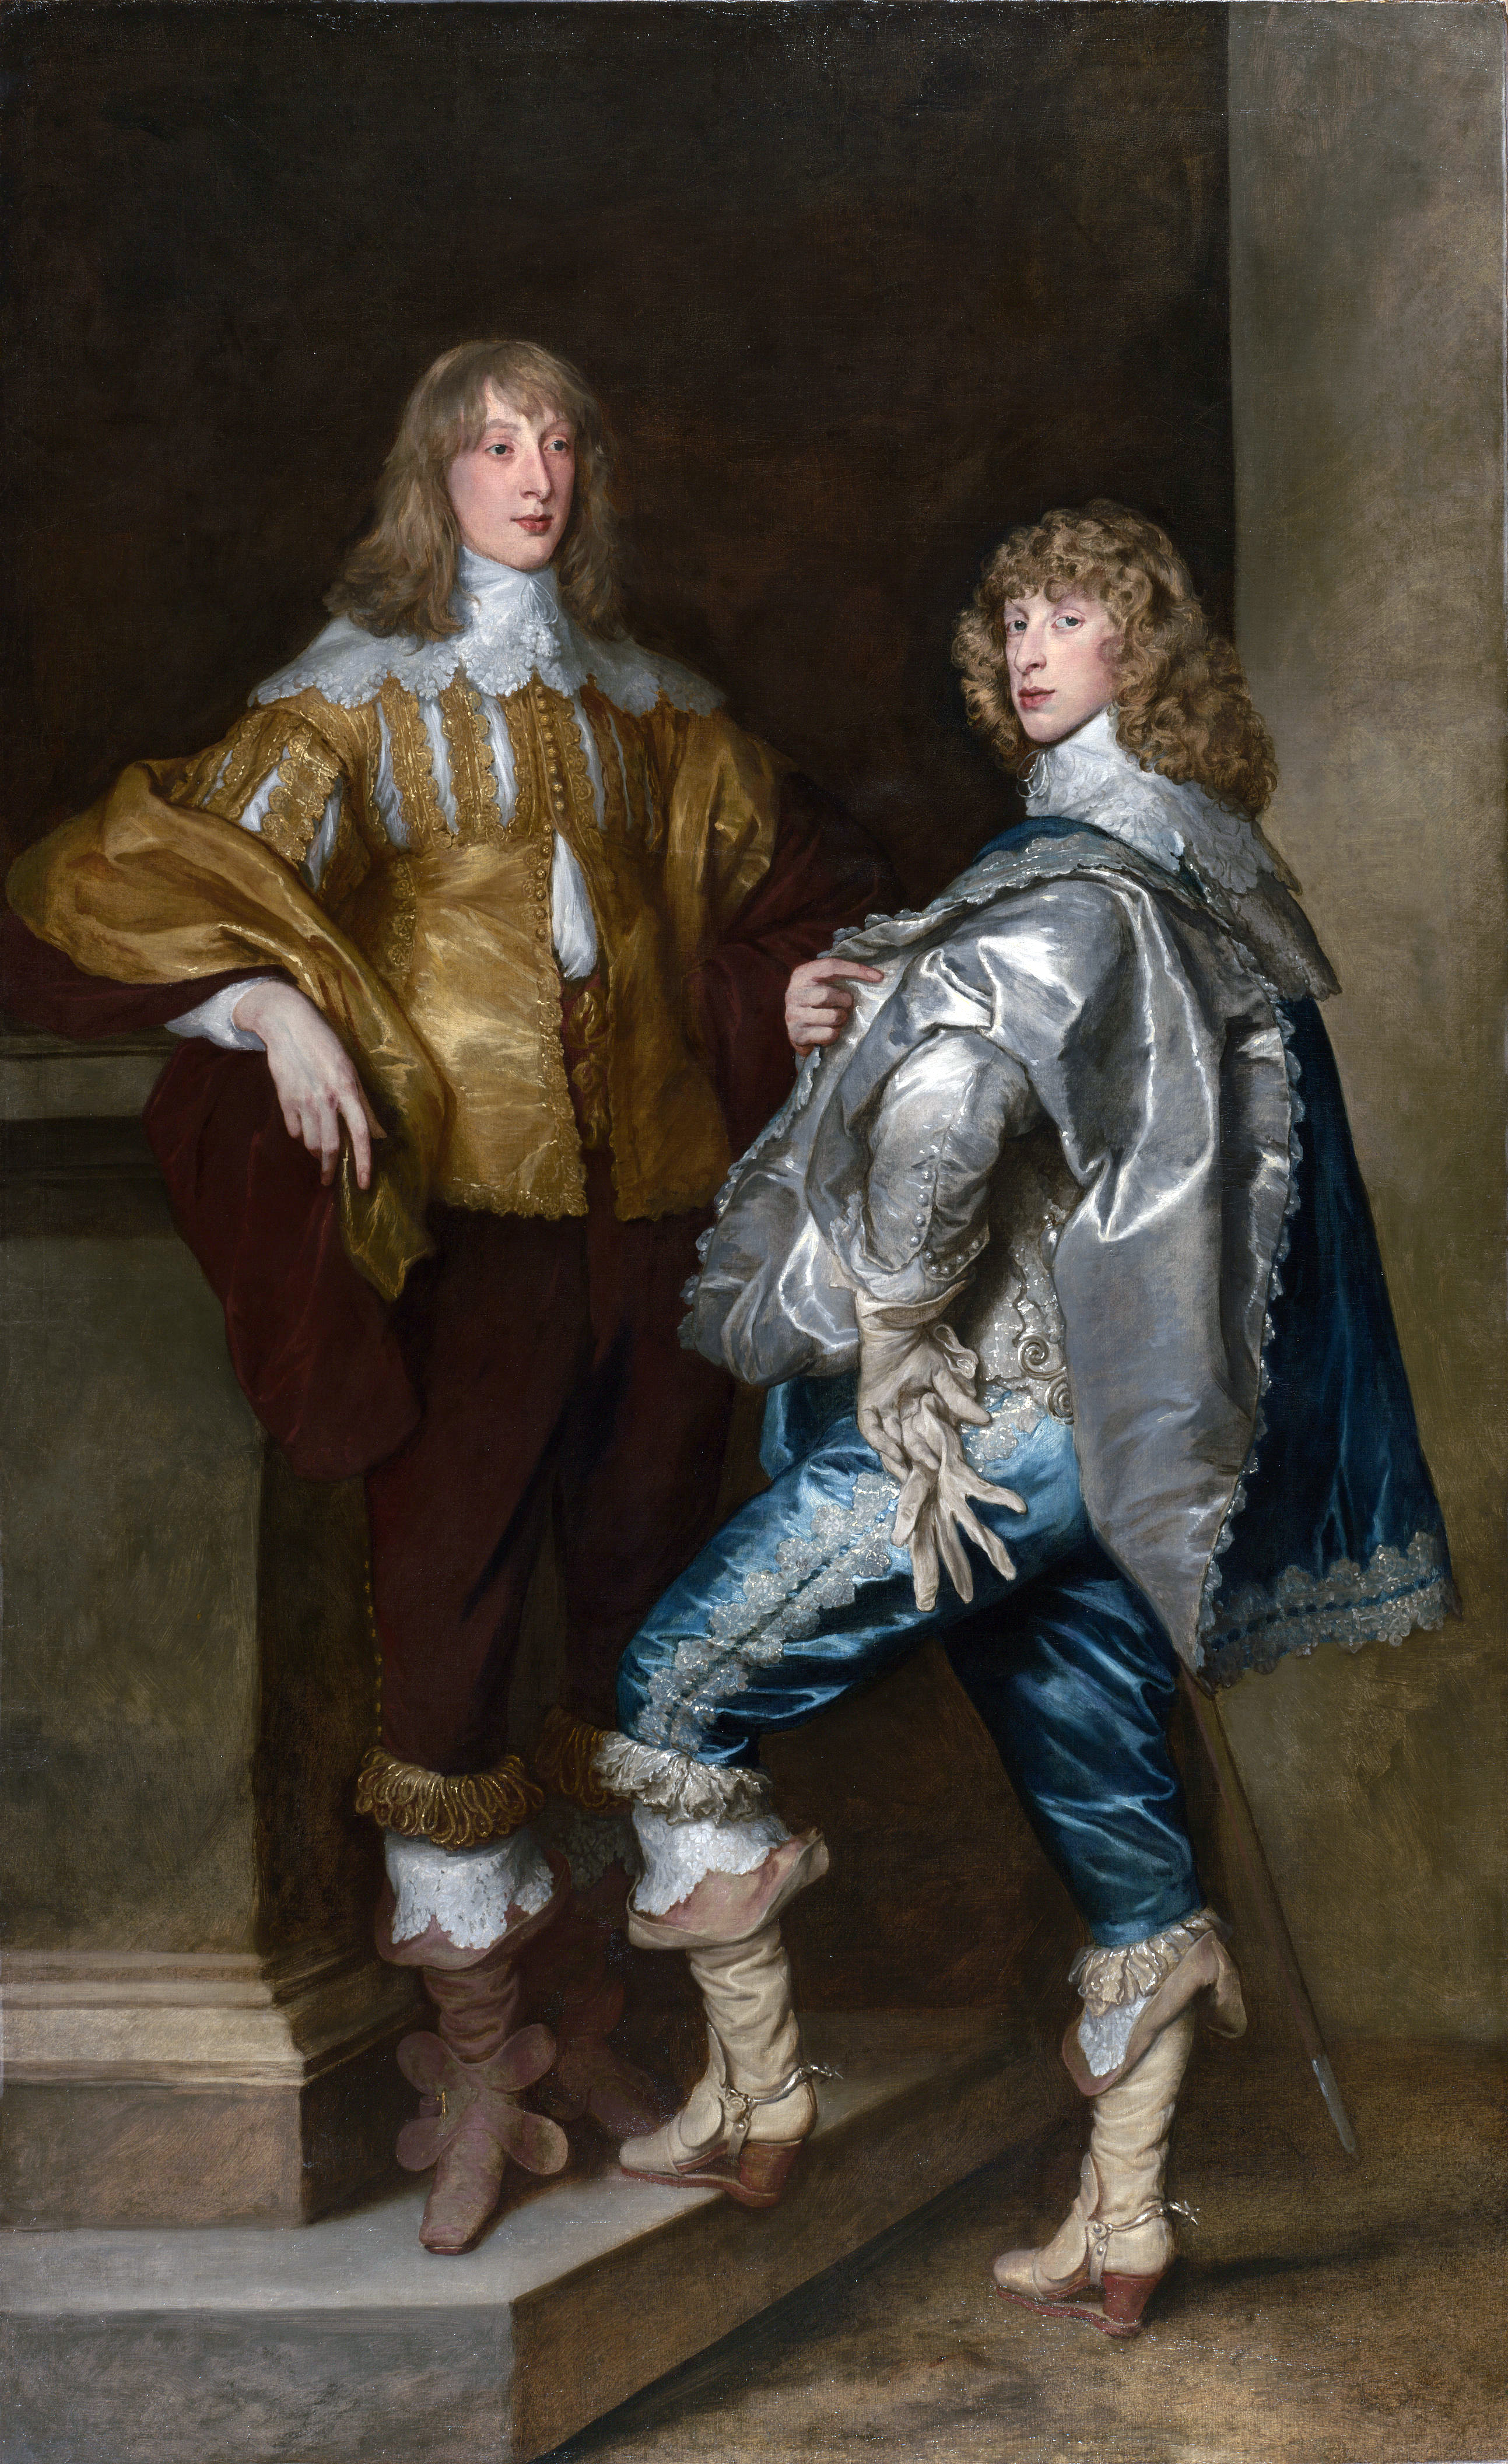 https://i2.wp.com/upload.wikimedia.org/wikipedia/commons/2/2f/Sir-Anthony-van-Dyck-Lord-John-Stuart-and-His-Brother-Lord-Bernard-Stuart.jpg